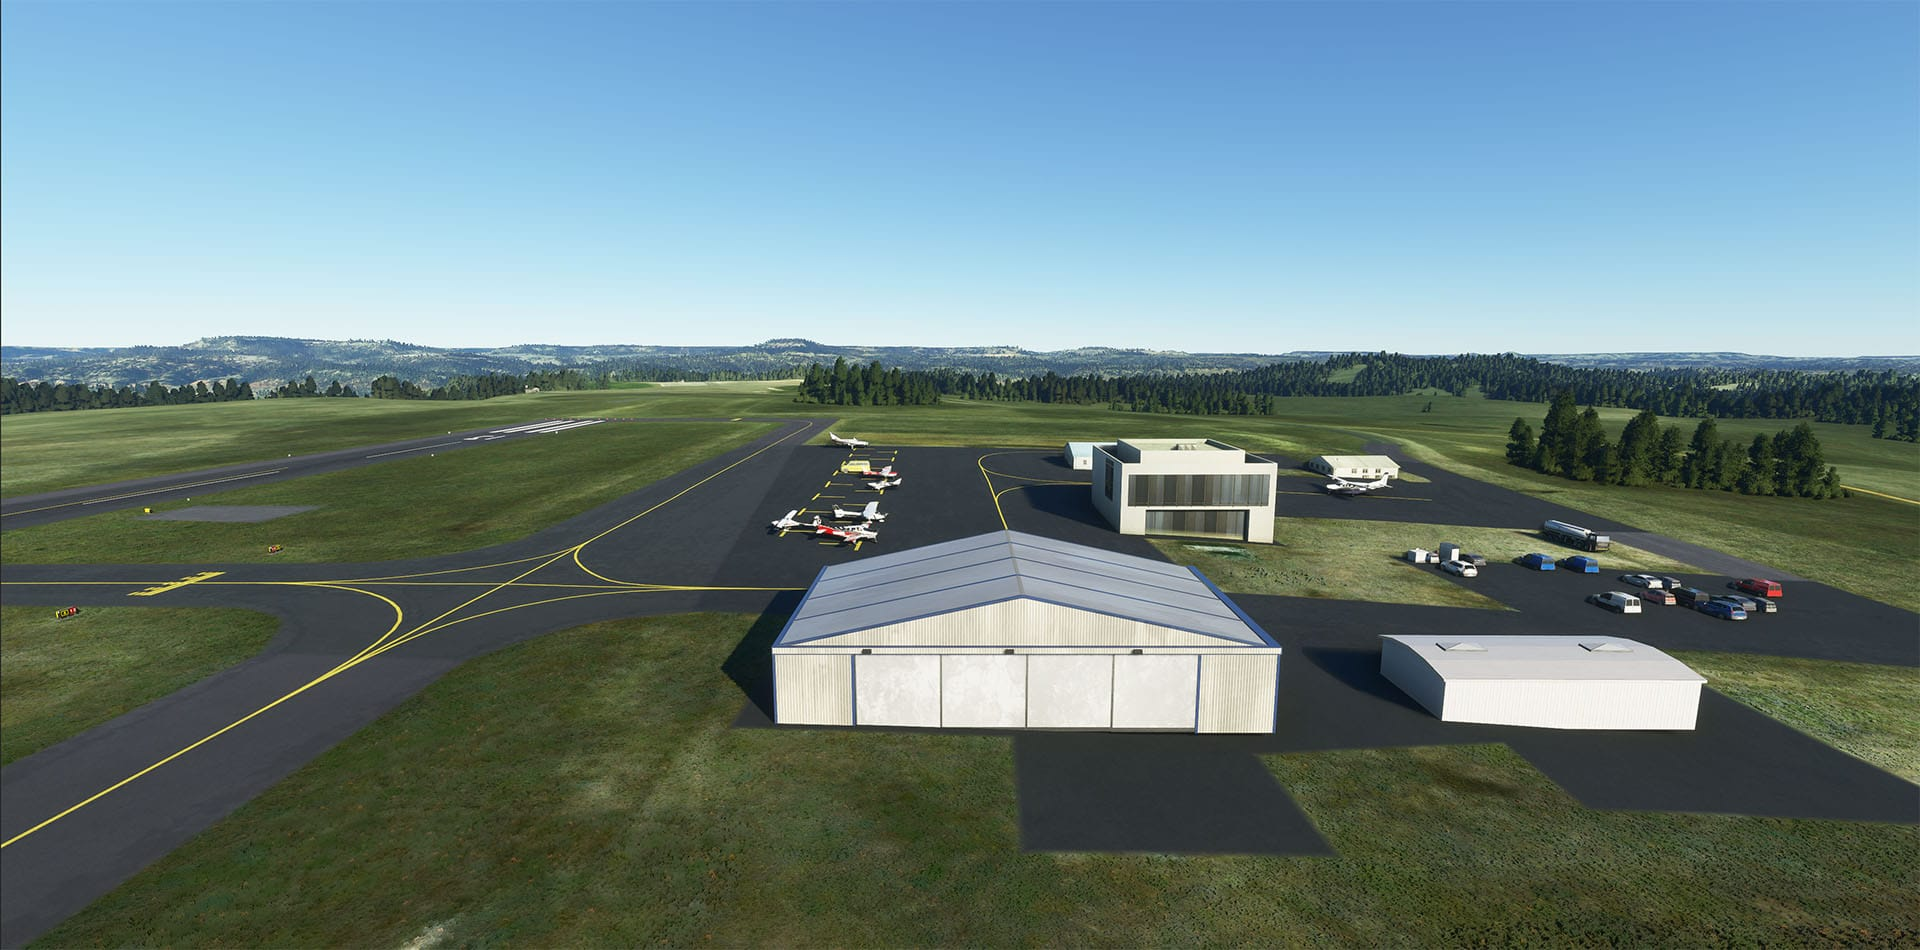 240602_Microsoft_Flight_Simulator_11_09_2020_12_38_07